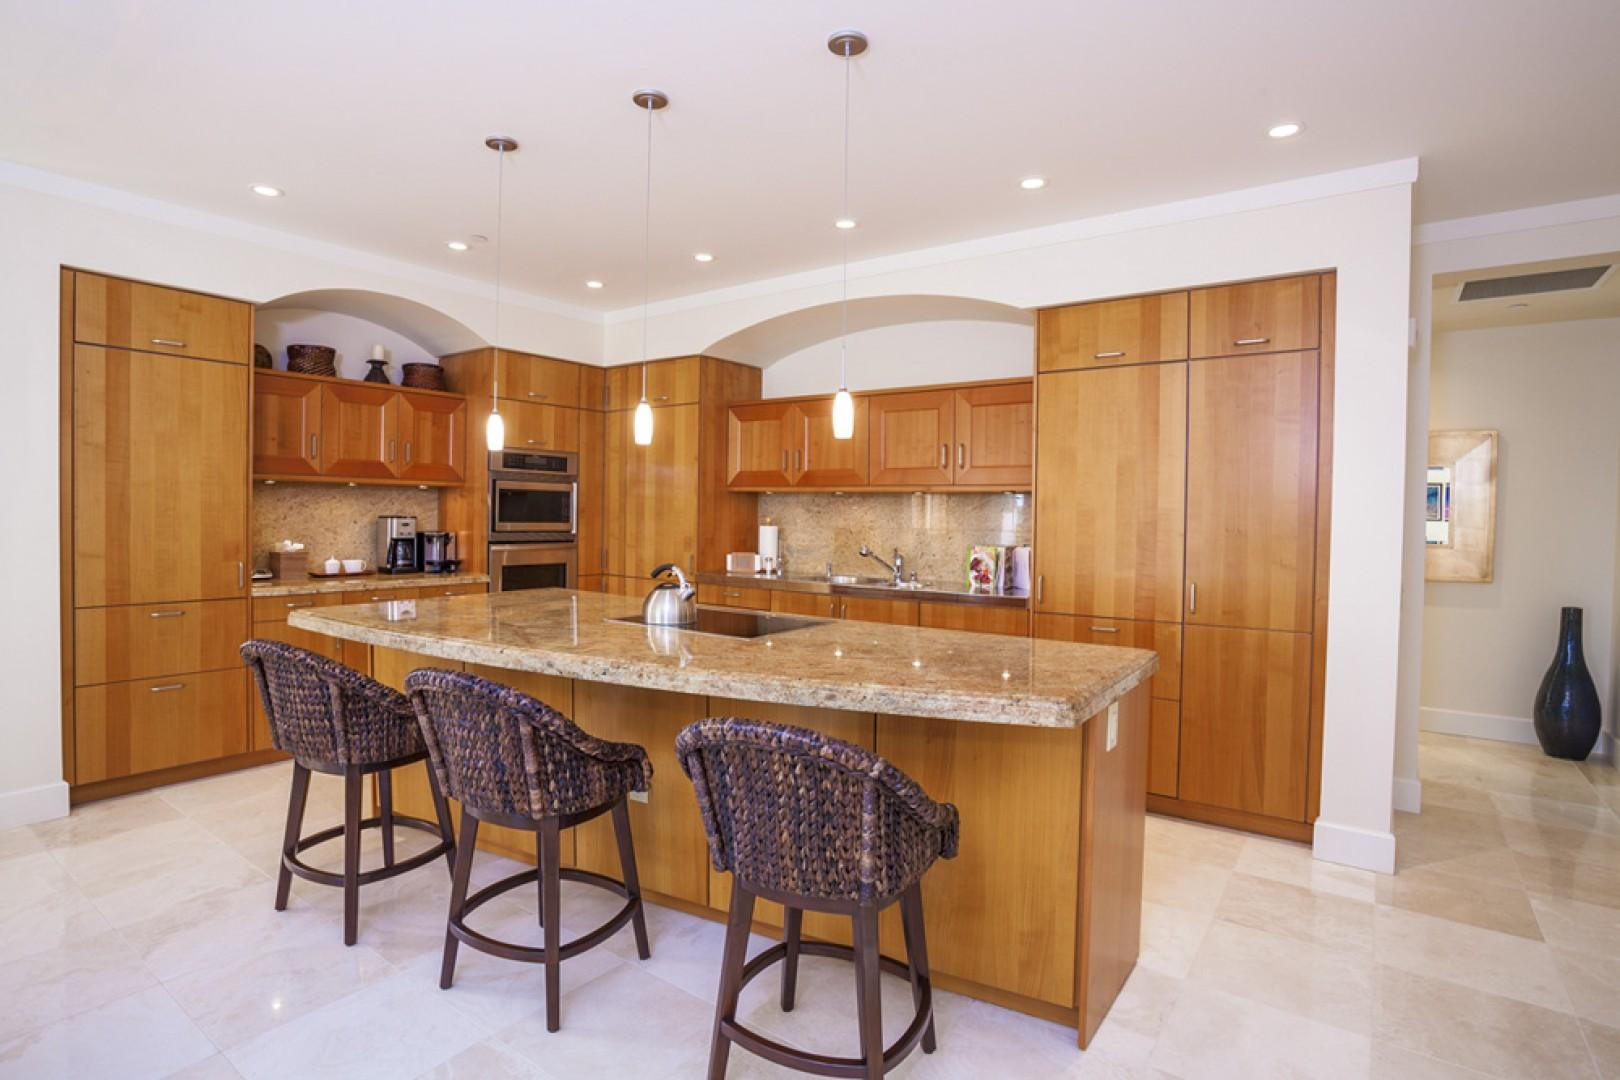 The gleaming kitchen has everything  you need for gourmet meals at home.